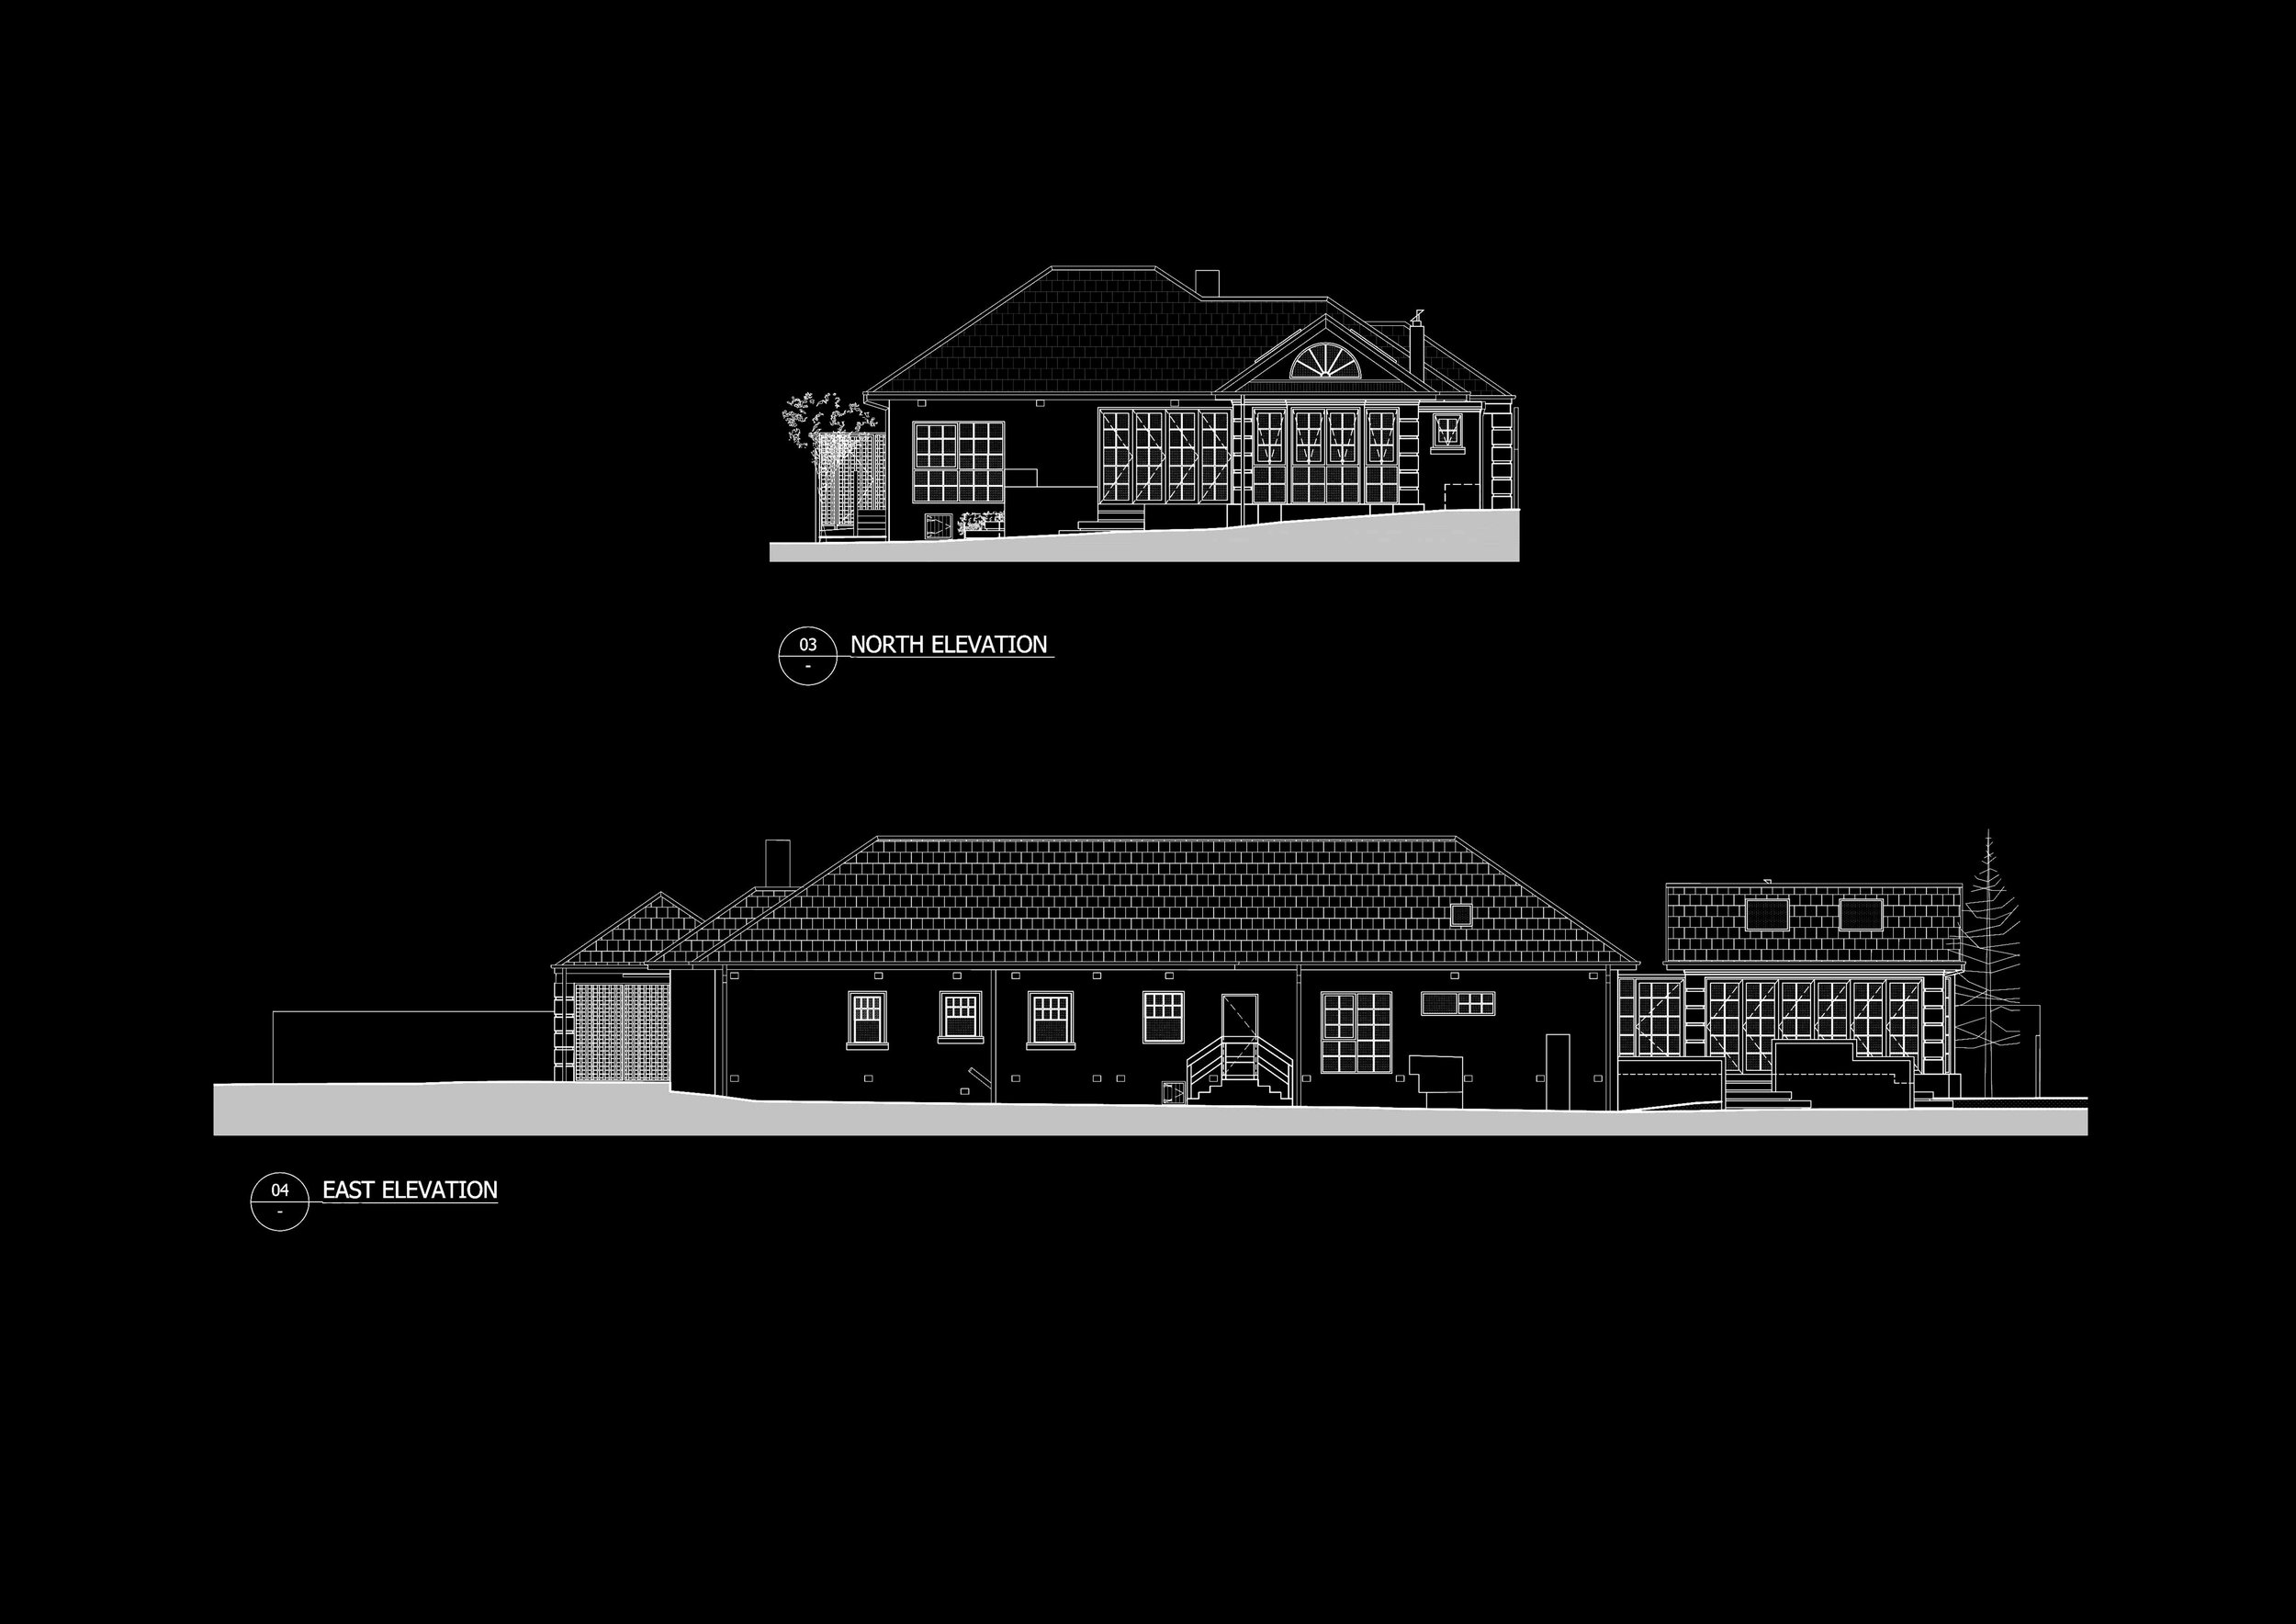 EXISTING CONDITION INCLUDING THE NEW PAVILION ELEVATIONS